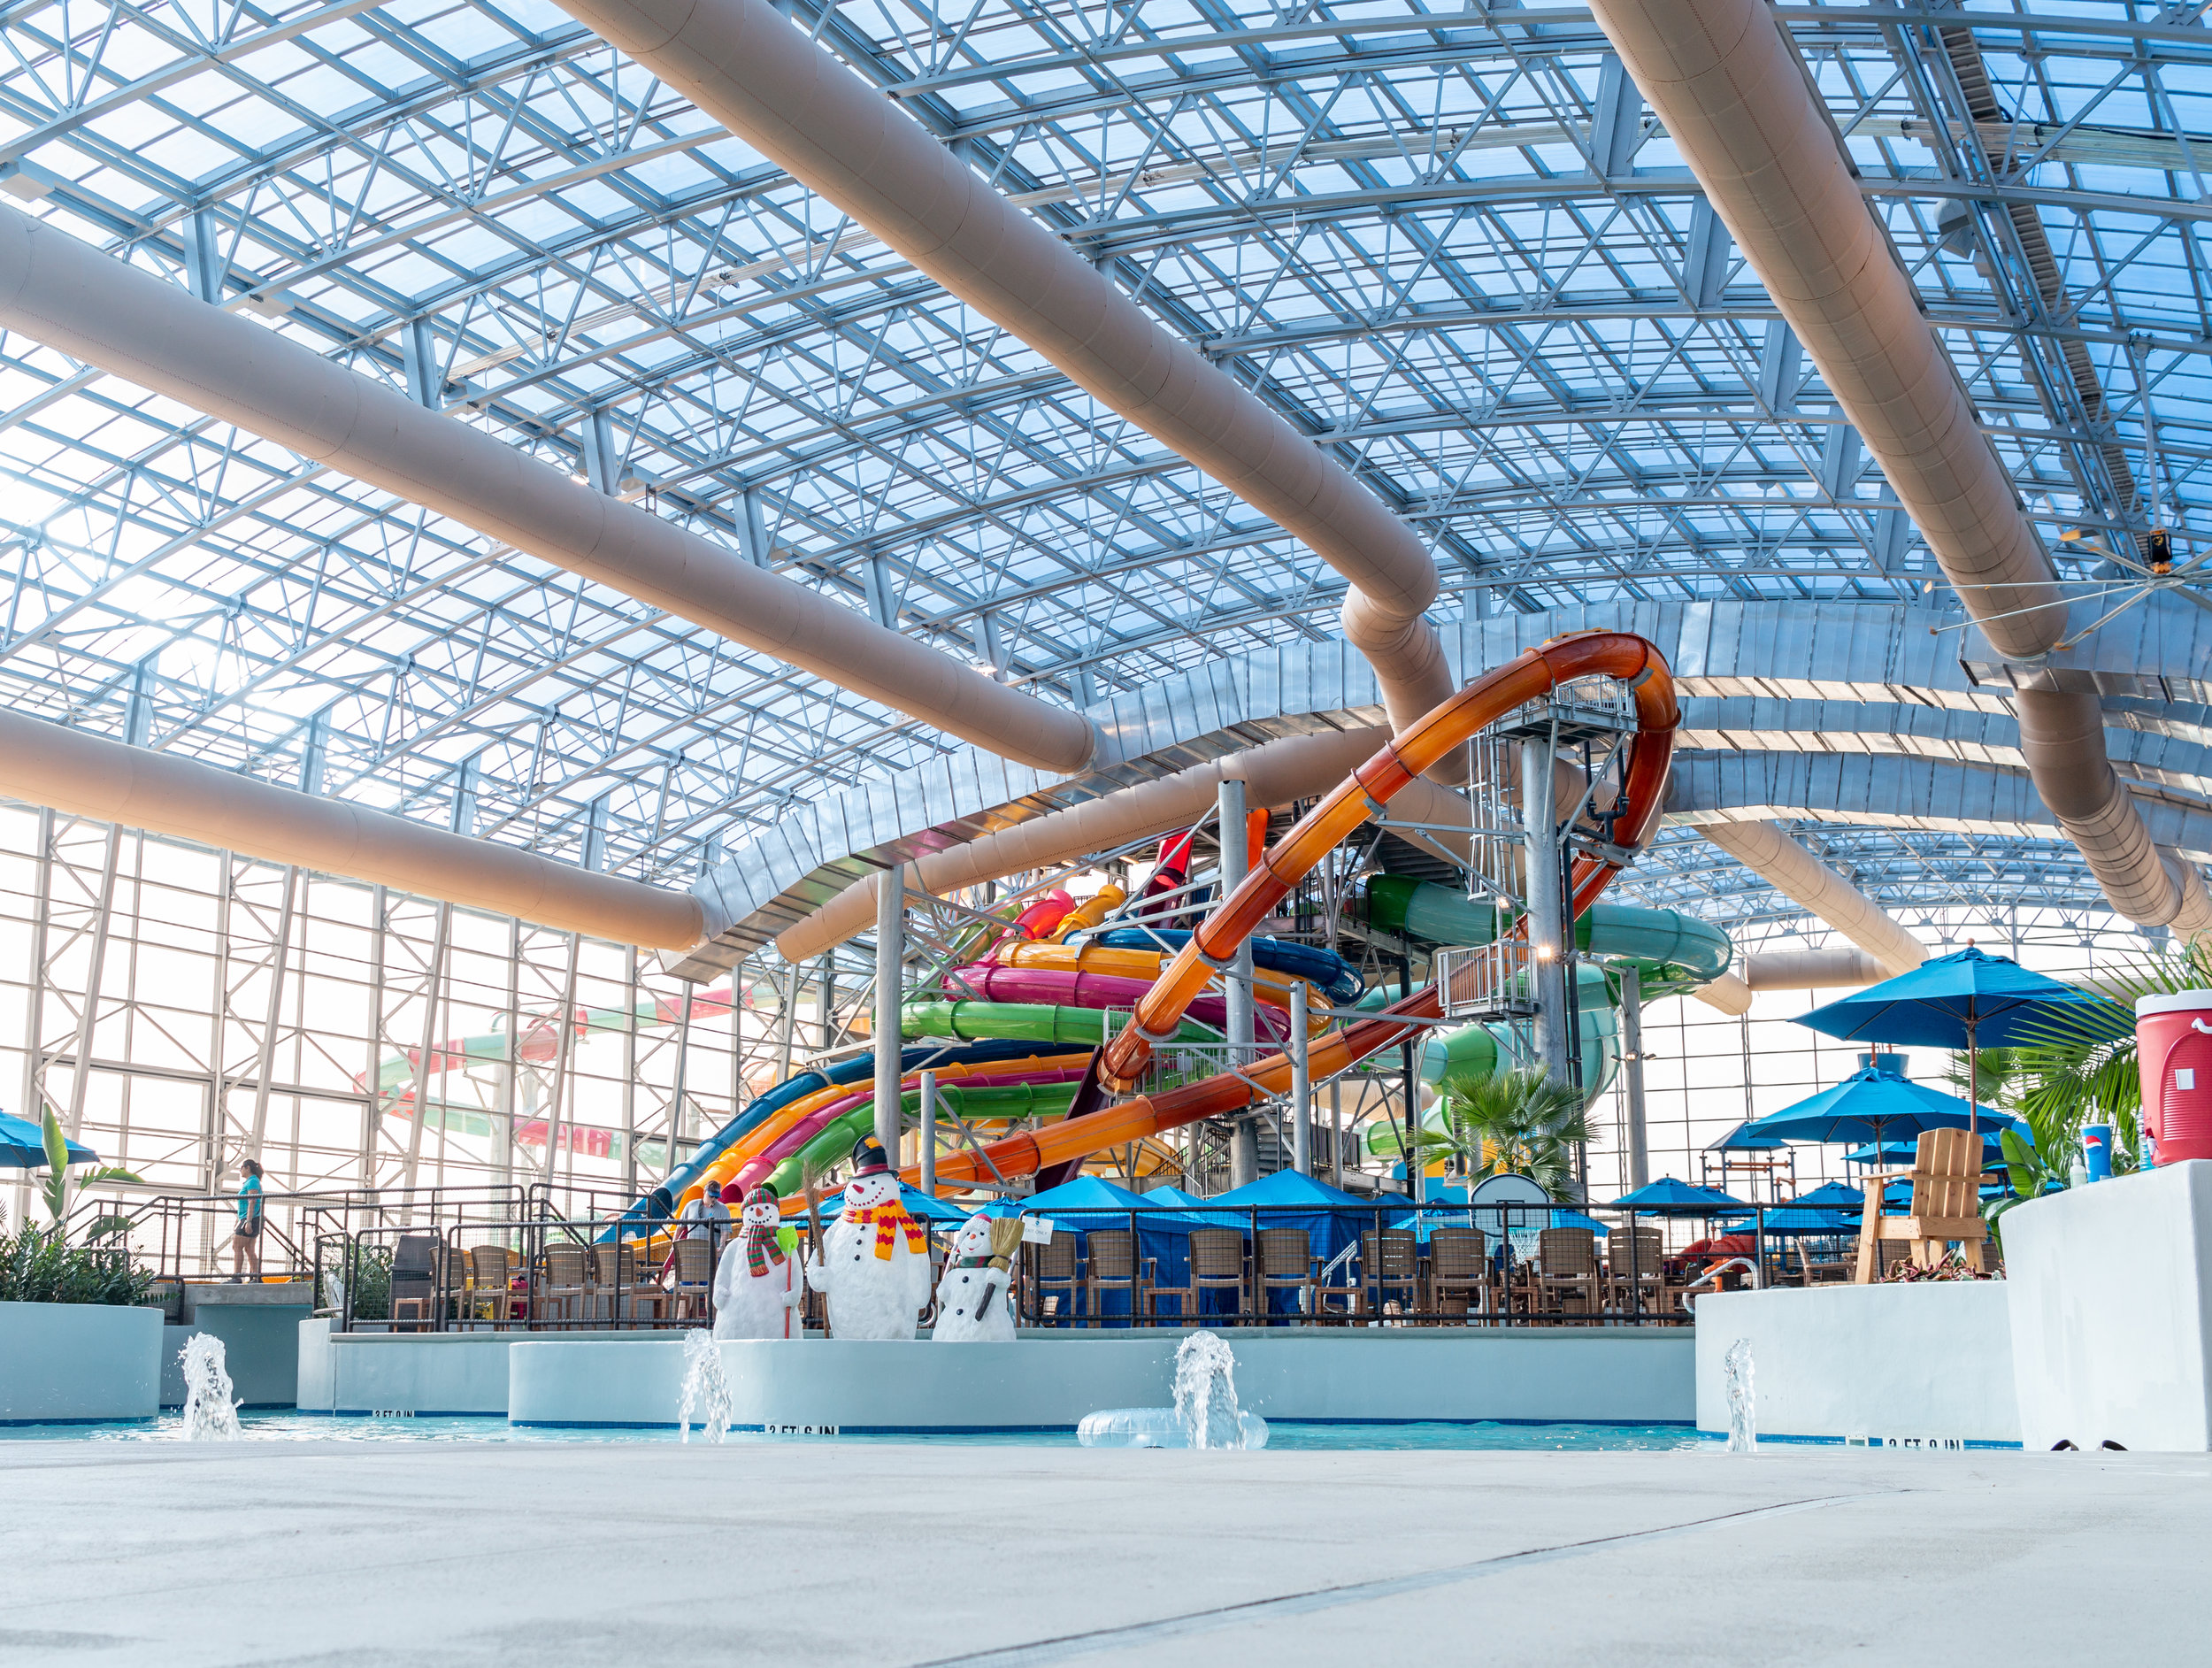 epic-waters-grand-praire-waterslides-fun-things-to-do